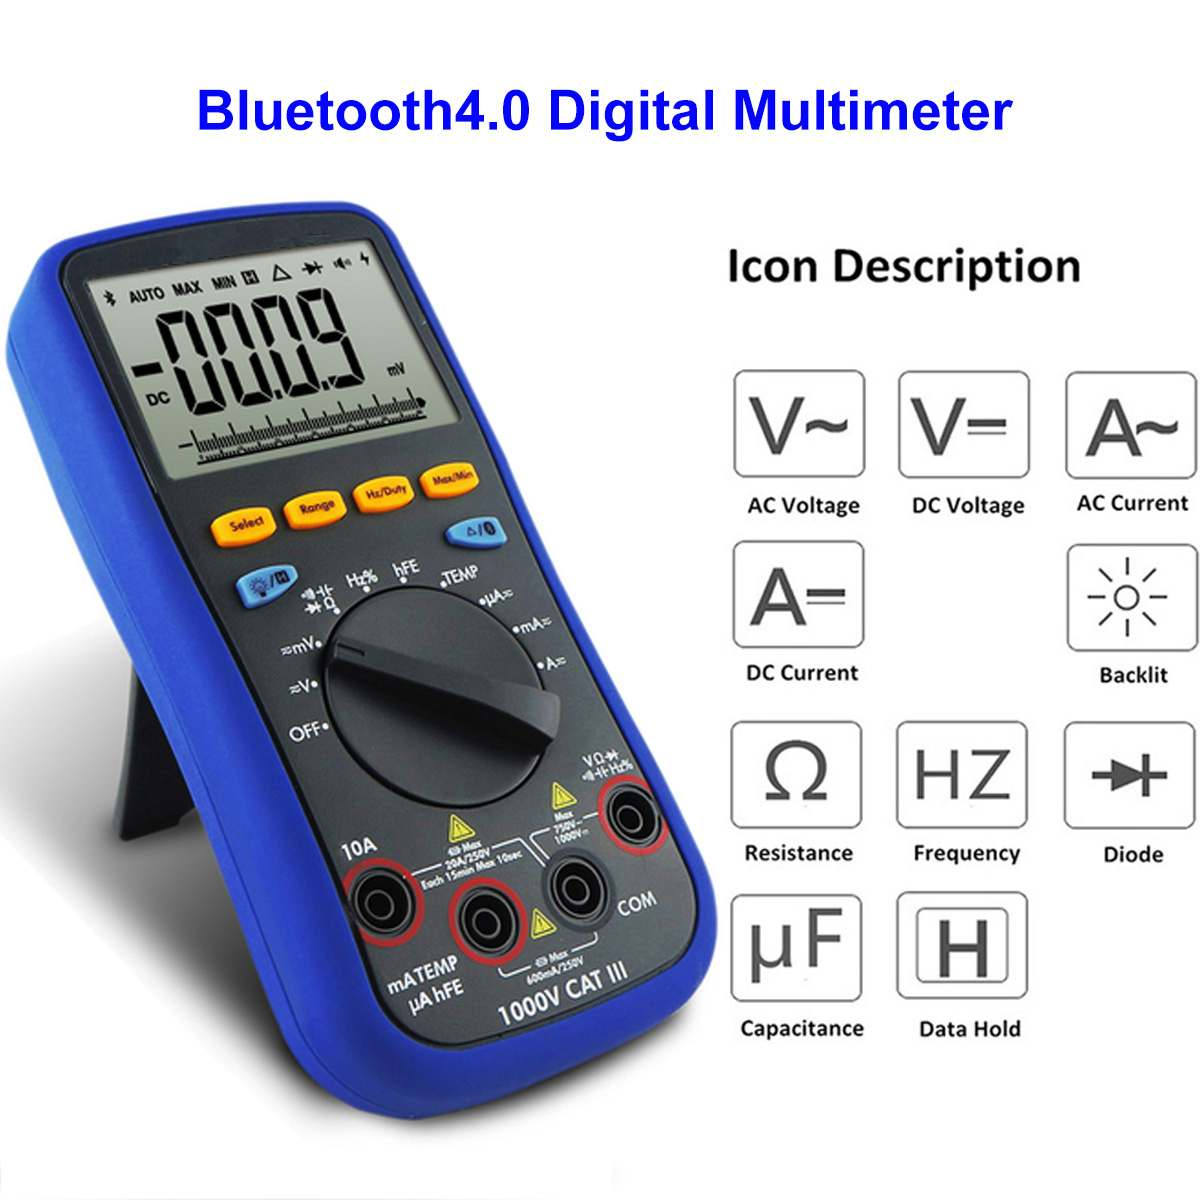 Tester bluetooth Lcd Digital Multimeter 4.0 Test Lead K type Thermocouple 6000 Count Backlight Real 10m Ohms Digital Multimeter|Multimeters| |  - title=